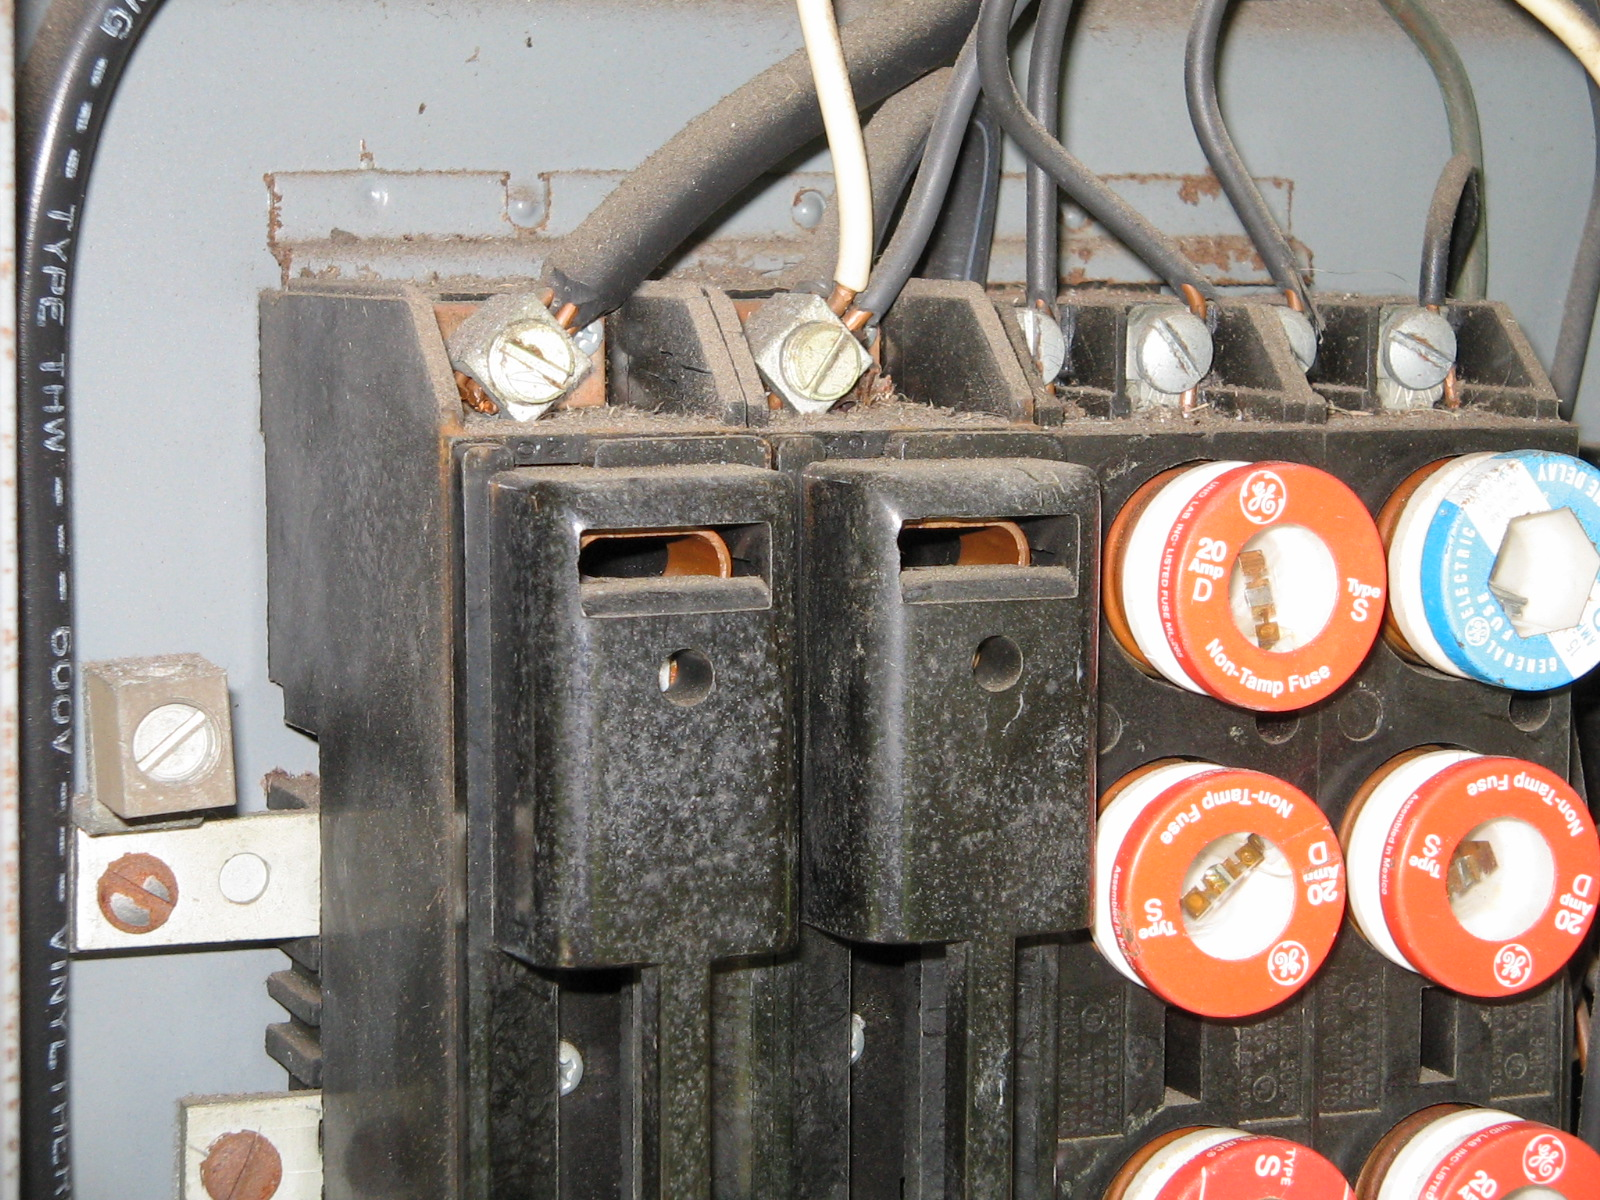 pic of fuses